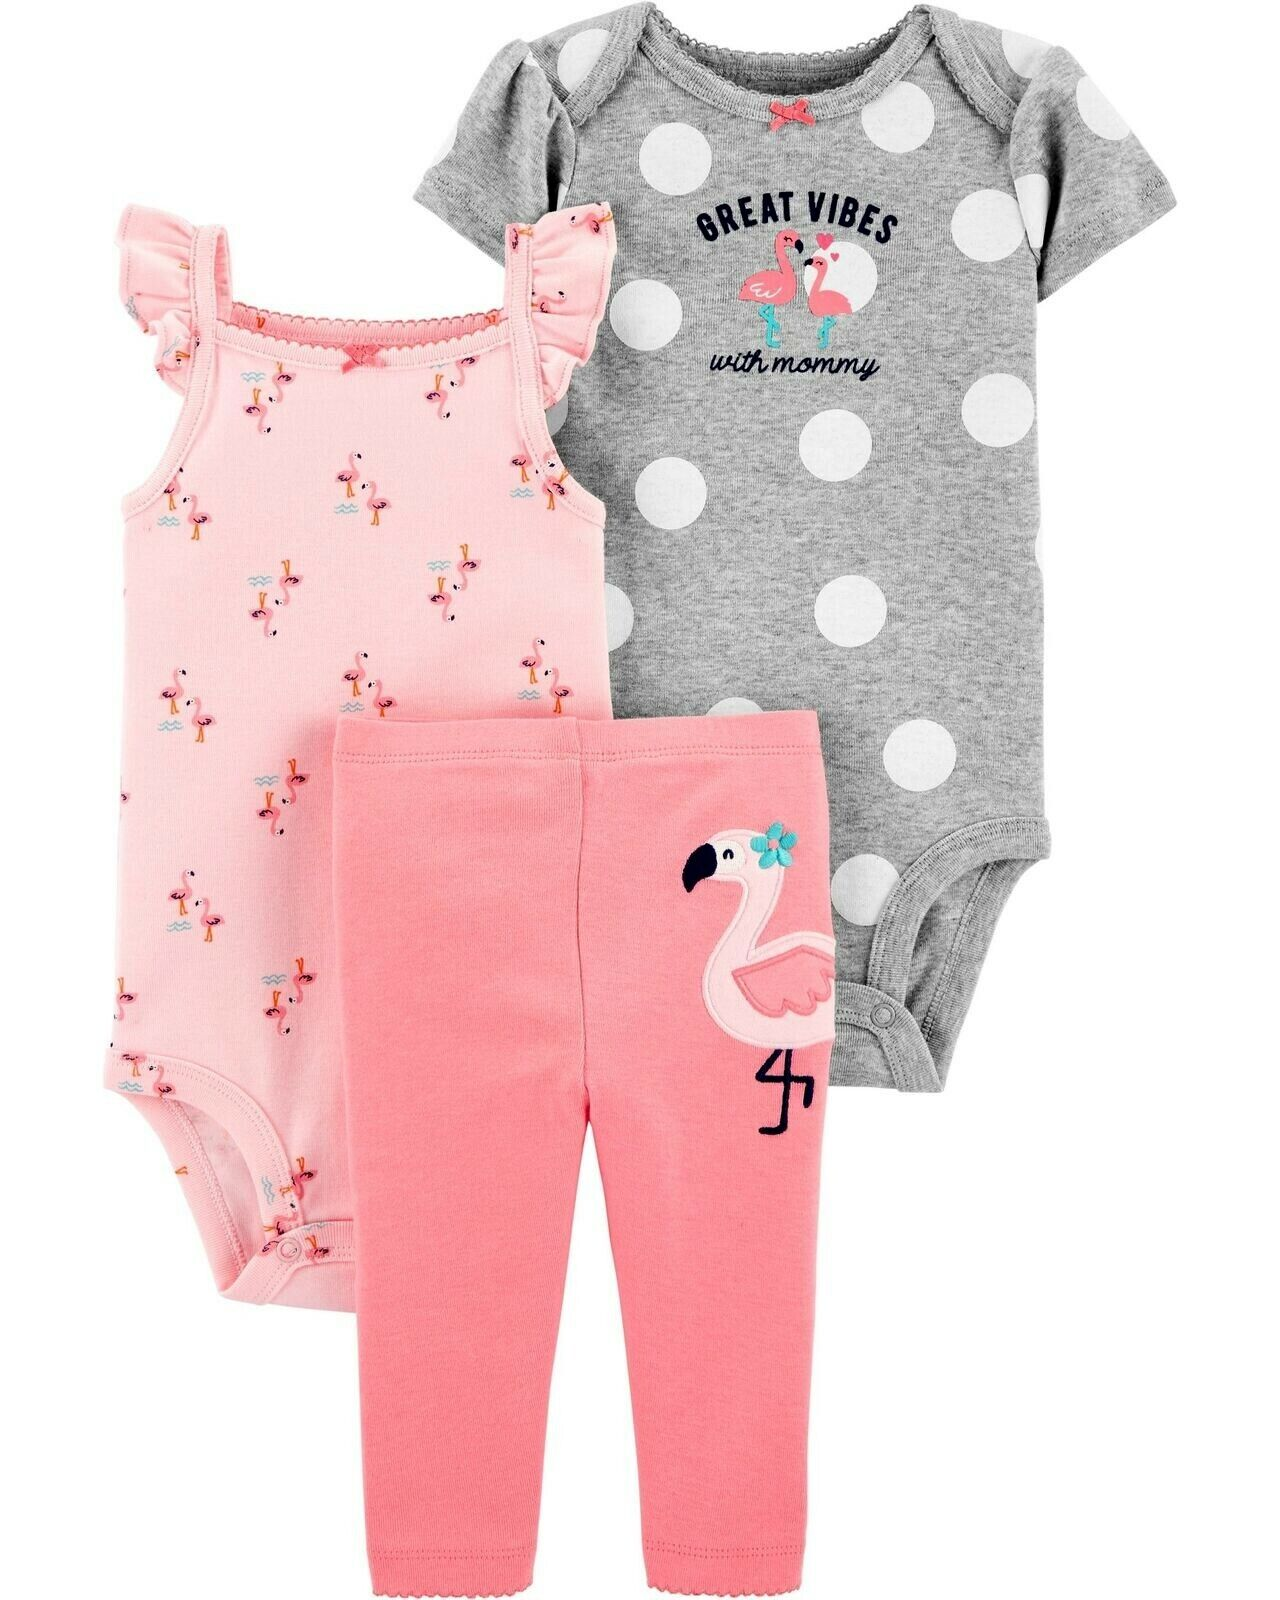 CARTER'S BABY GIRL 3PC FLAMINGO BODYSUITS PANT SET 6M OUTFIT CLOTHES